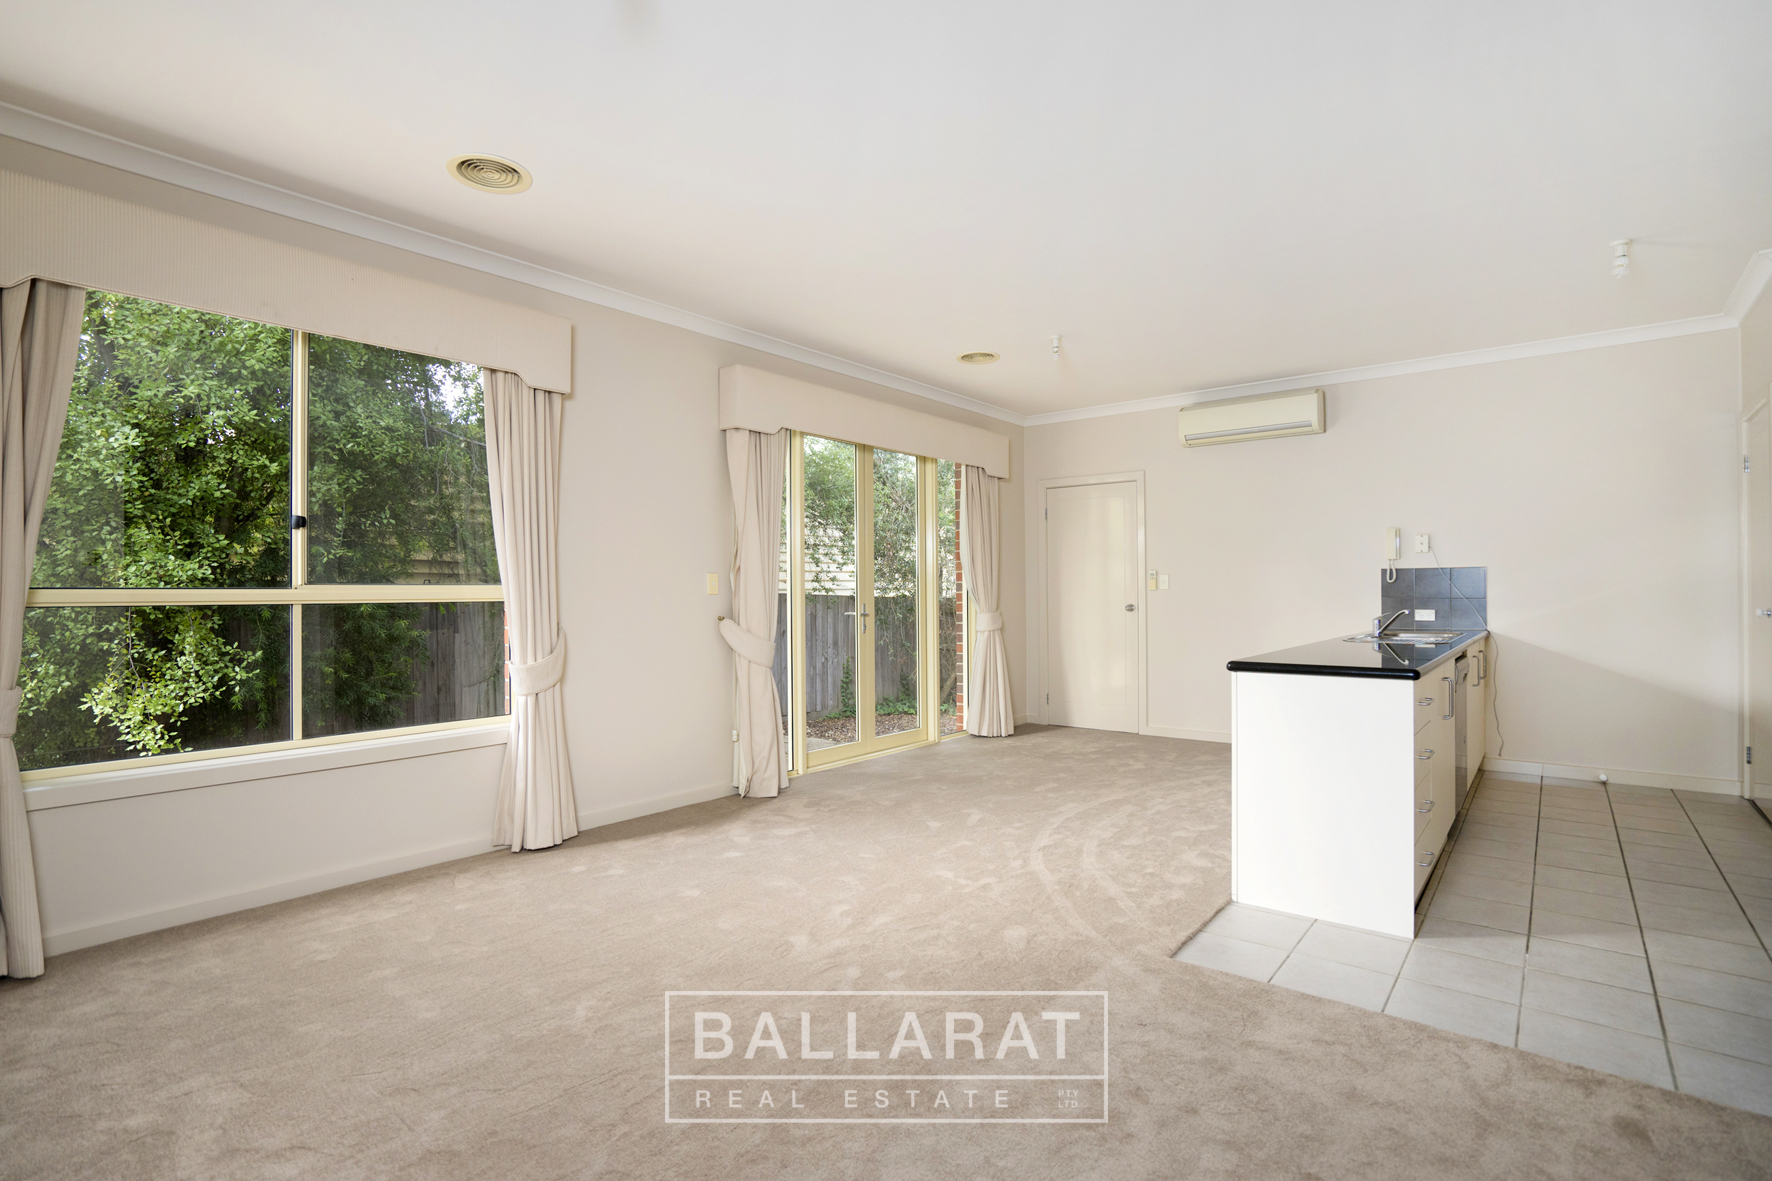 2/114-116 Drummond Street South Ballarat Central